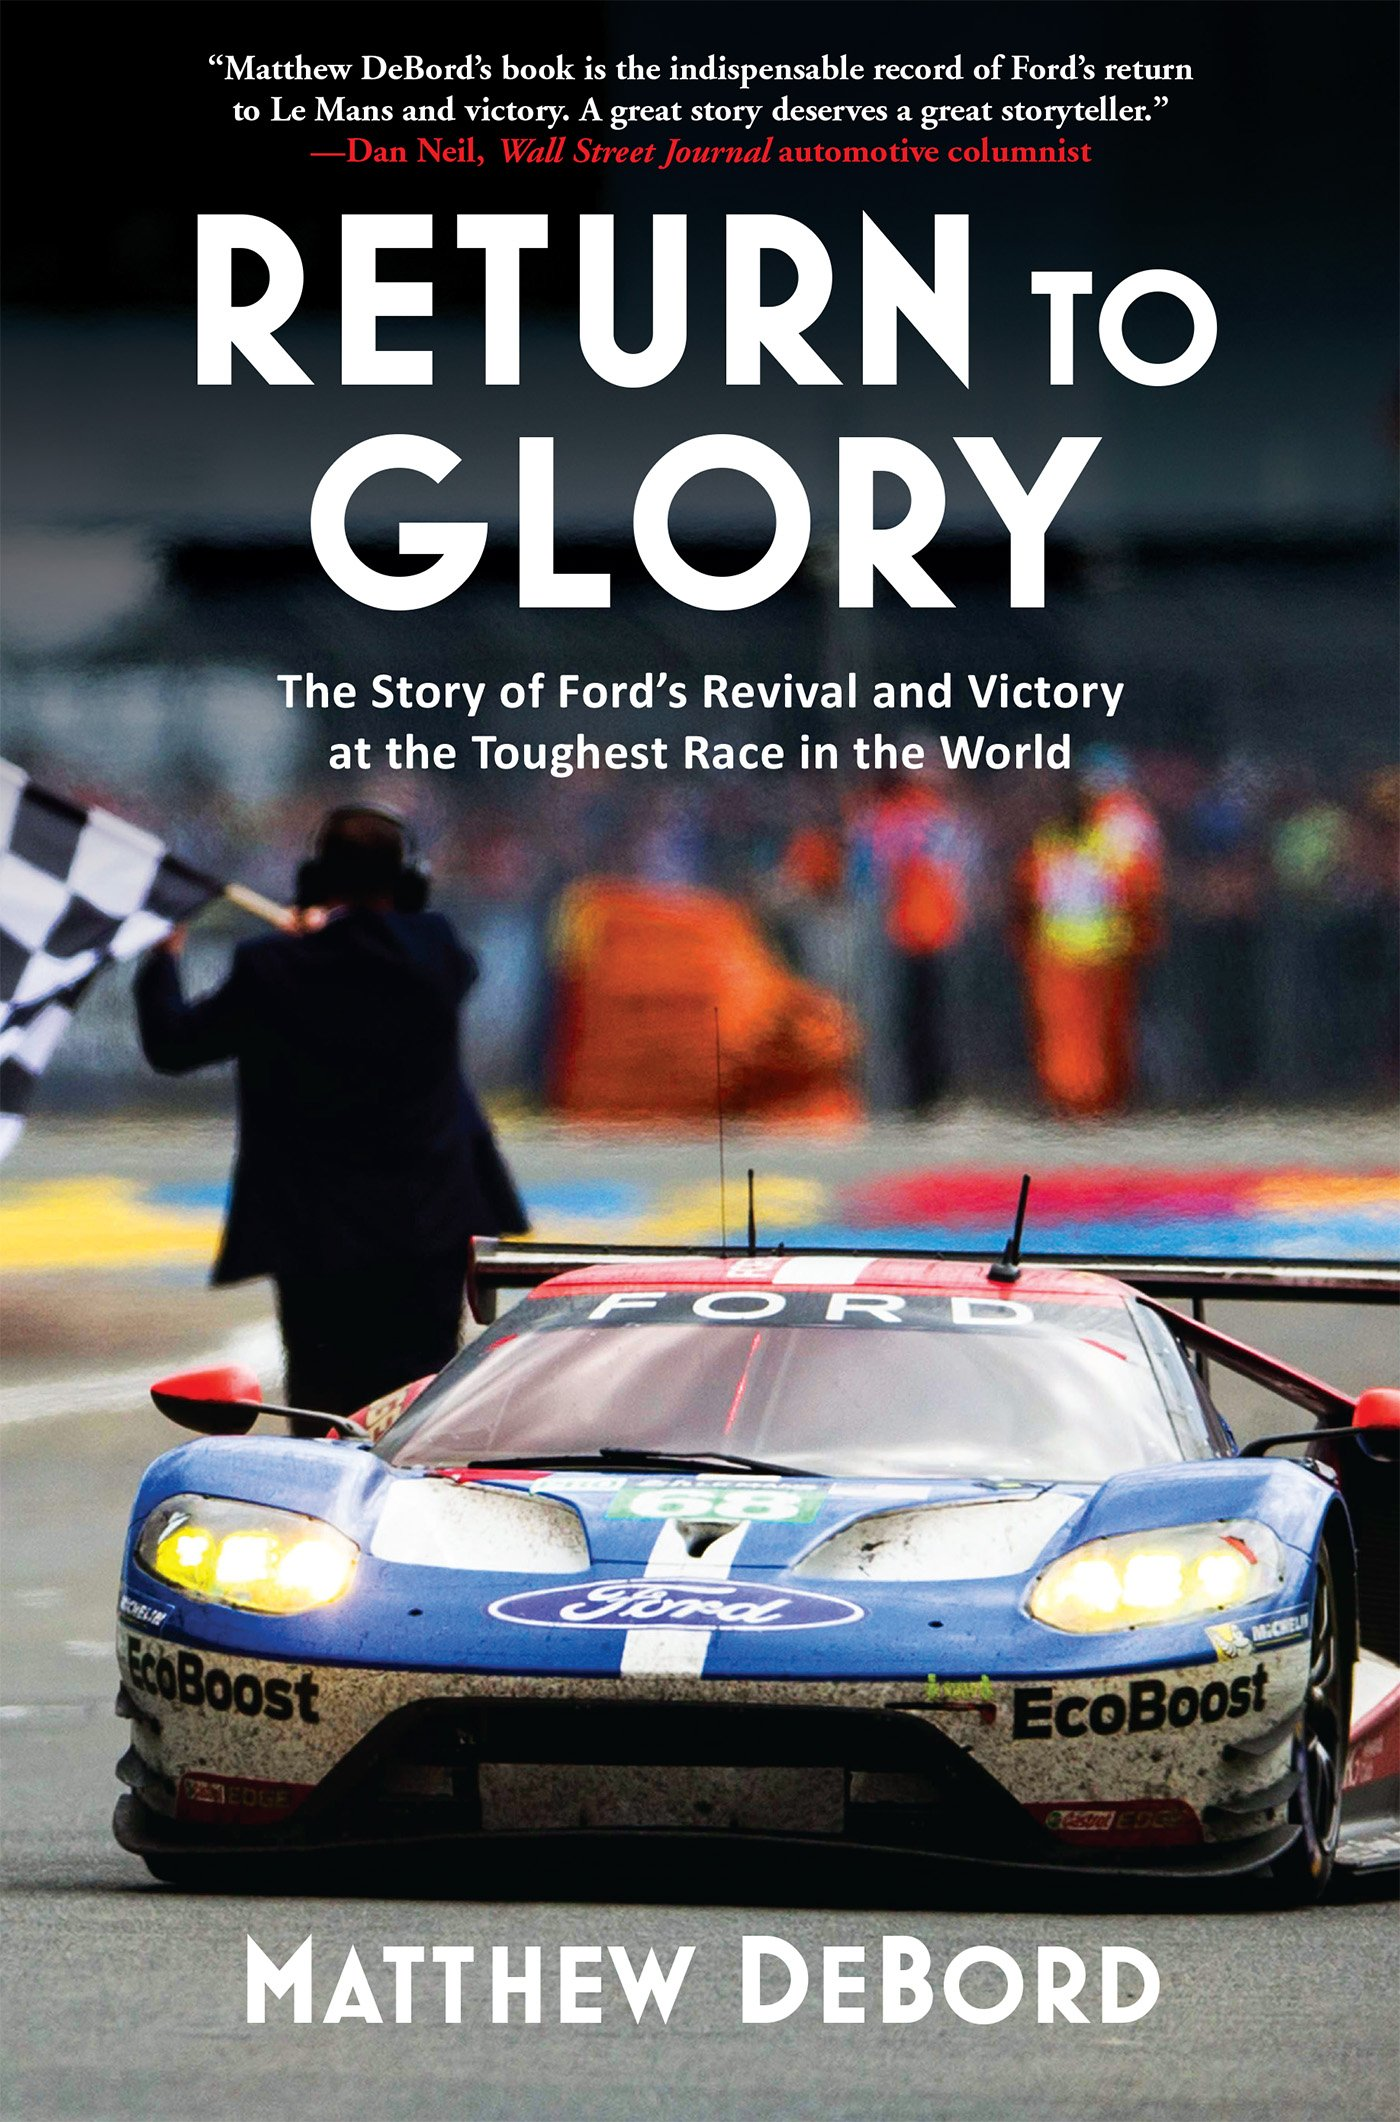 Return to Glory: The Story of Ford's Revival and Victory at the Toughest Race in the World pdf epub